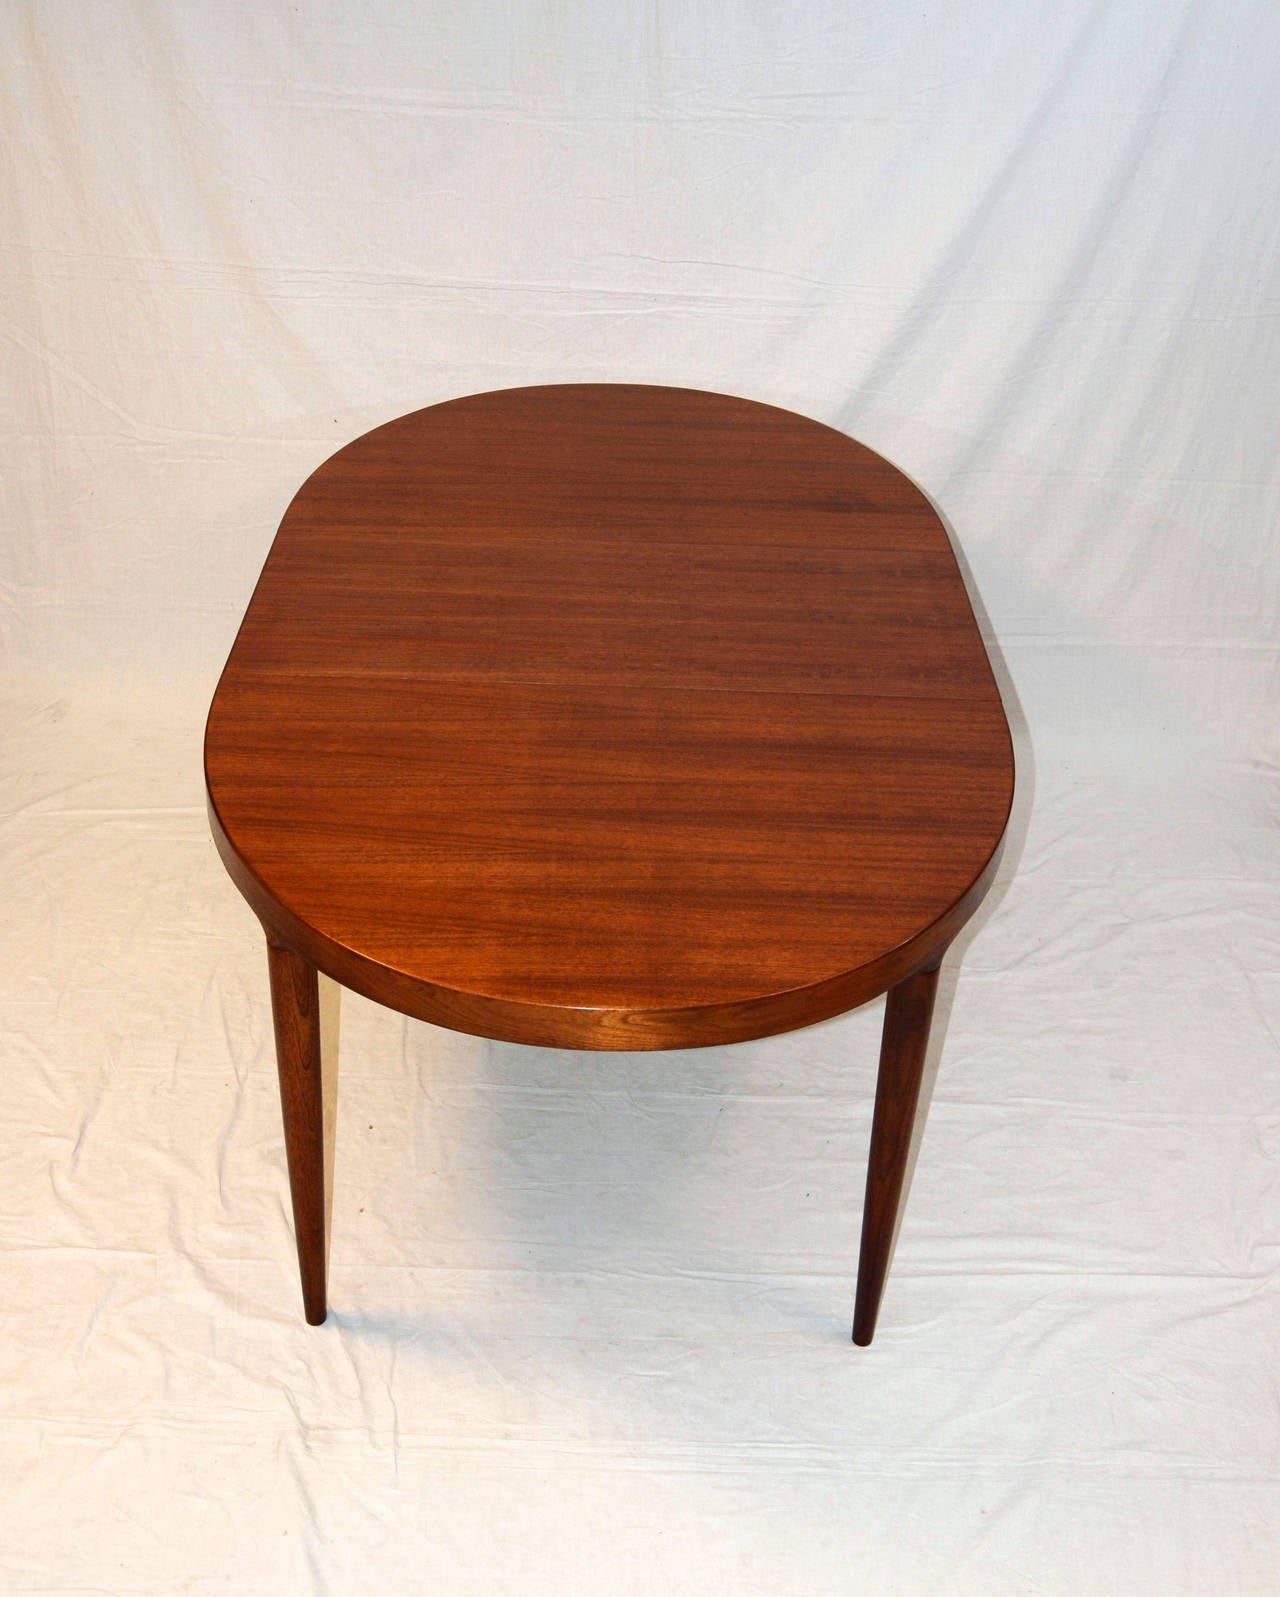 Mid Century Danish Walnut Oval Dining Table by Moreddi Co at 1stdibs